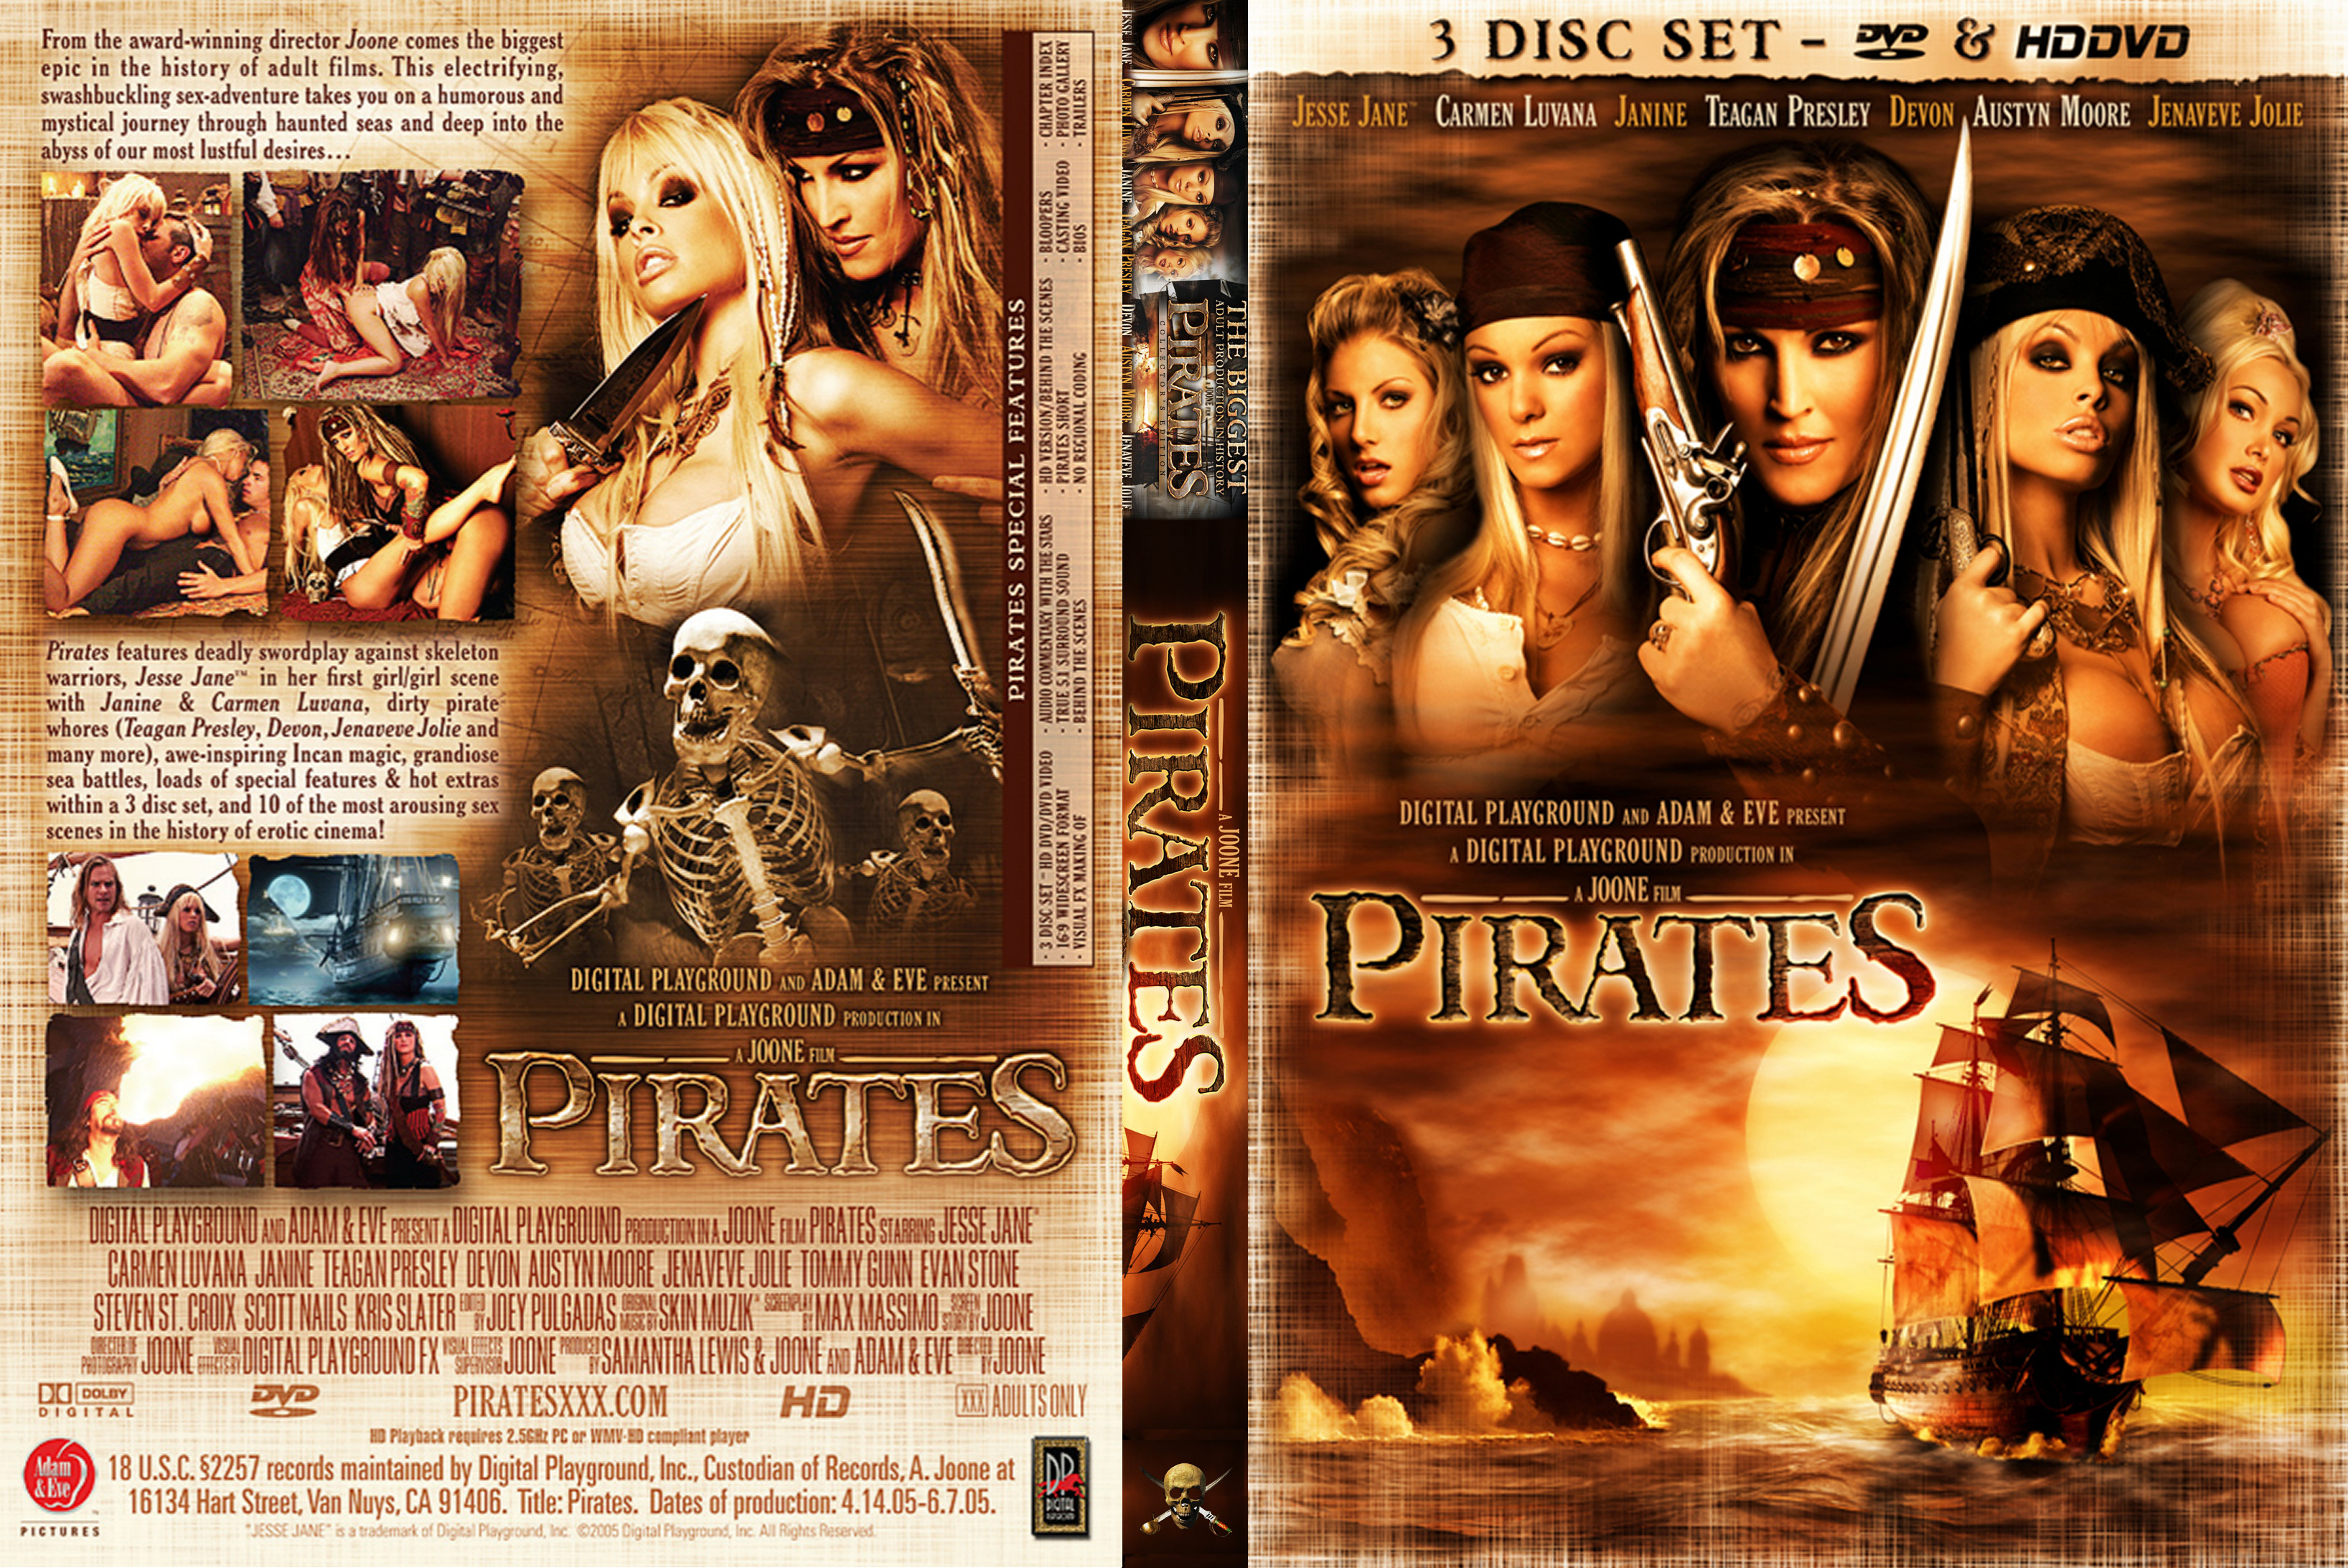 Pirates erotic film watch online nsfw clip